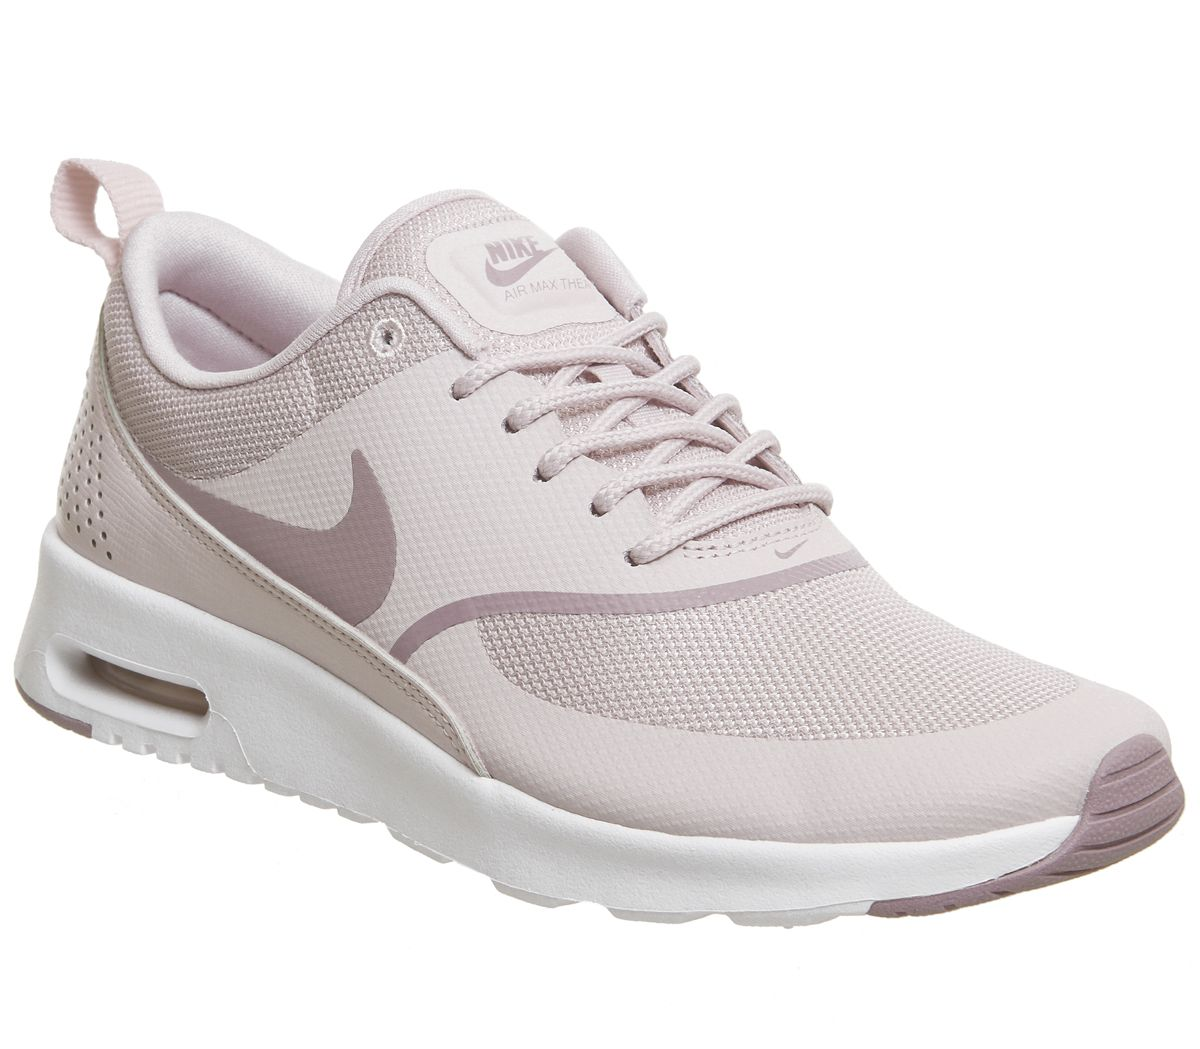 9b28e62038a5 Nike Air Max Thea Trainers Barely Rose Elemental Rose White - Hers ...